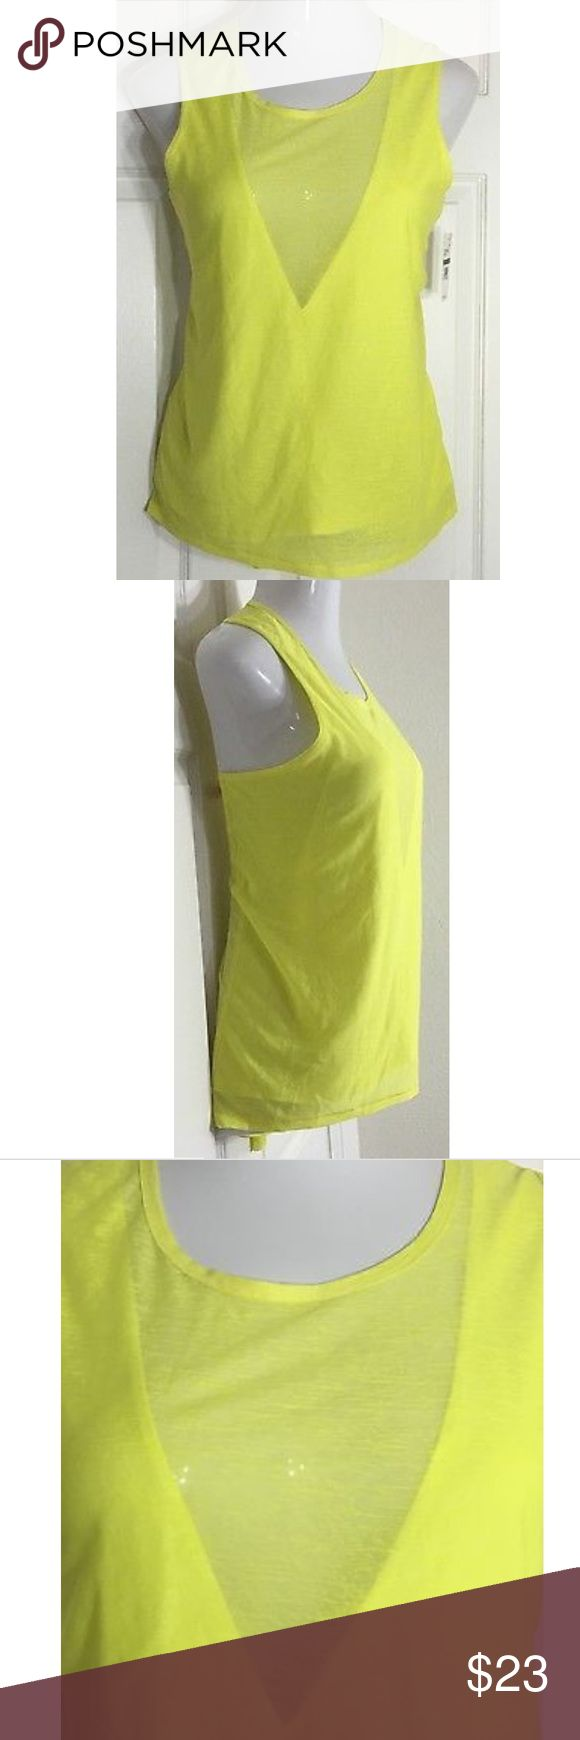 "Kiind Of Sleeveless Hi-Low Yellow Tank Top Cute yellow top! The front is partially lined. The back is semi sheer with pleats at the neckline. Bust: 40""; Length in the back from the shoulder: 25"". Smoke free home. Thank you for shopping my closet 😊🌺 Kiind Of Tops Tank Tops"